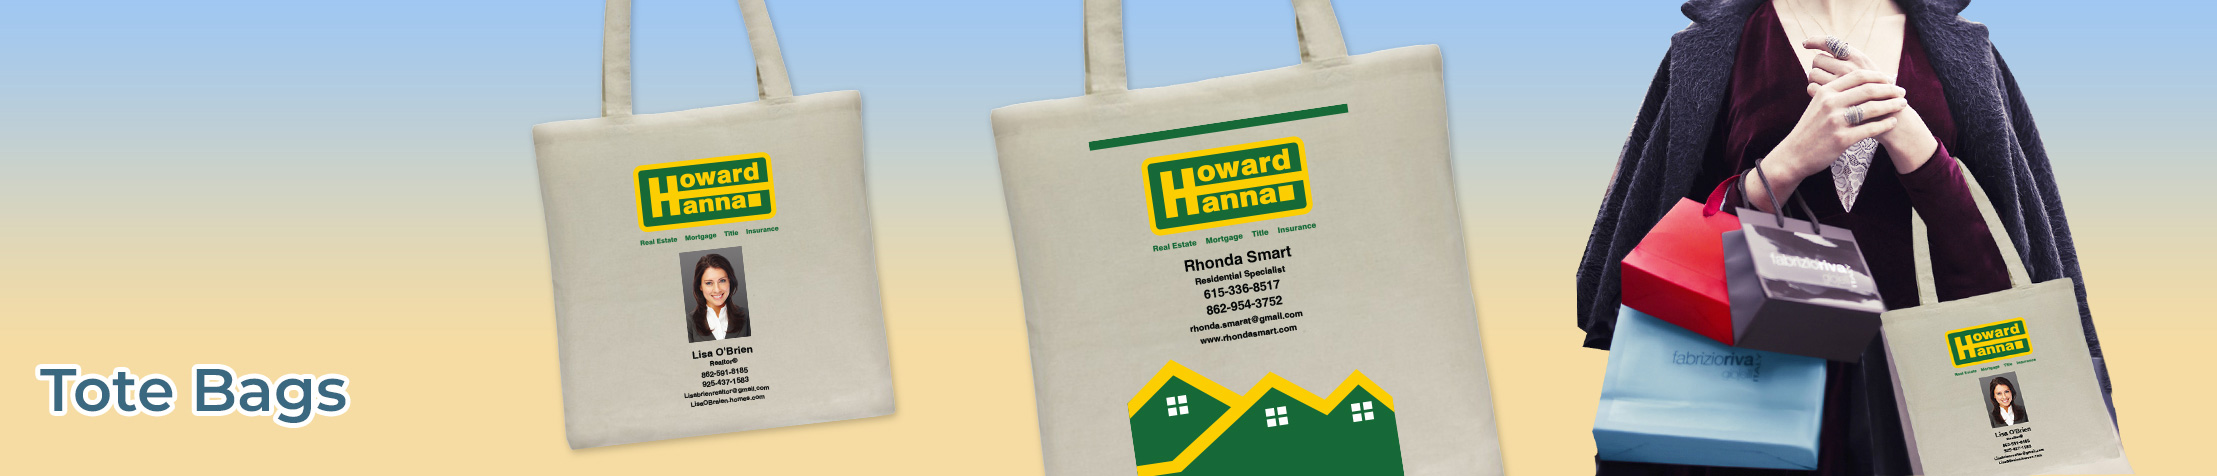 Howard Hanna Real Estate Tote Bags - Howard Hanna  personalized realtor promotional products | BestPrintBuy.com